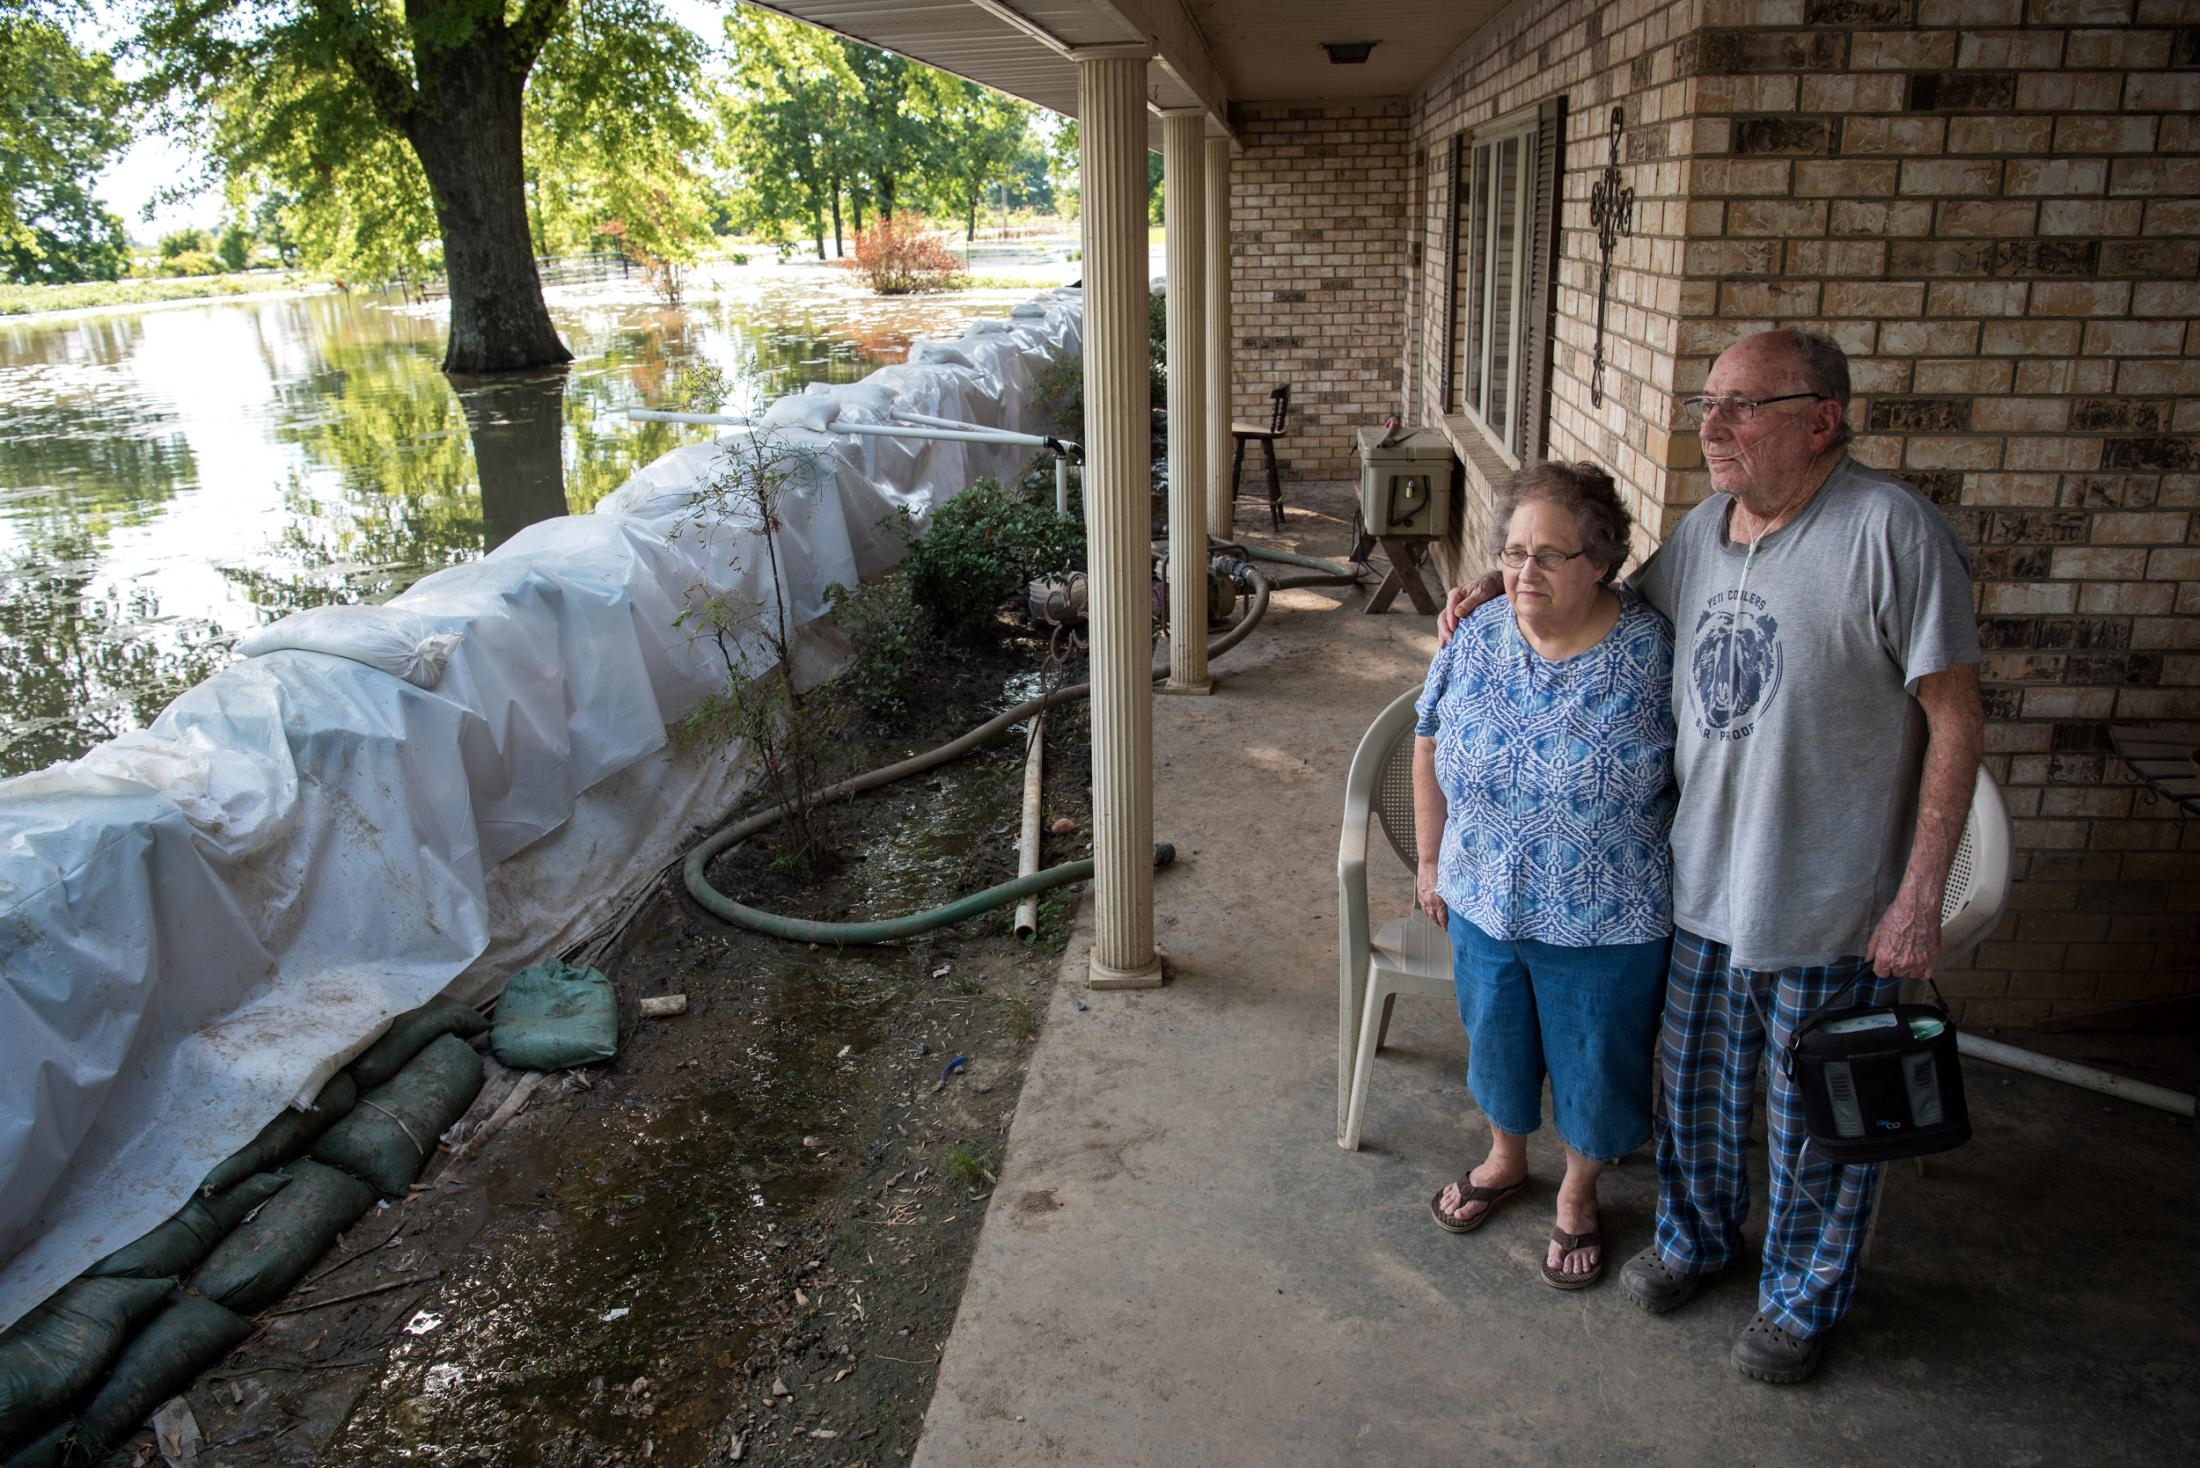 Barbara Browning, 74, poses for a portrait with her husband Norman Browning, 77, at their home in Valley Park, Mississippi June 14, 2019. A levee was constructed around their house to keep the backwater out, and the couple have barely left their home since the flooding began in February. Members of their family check on them daily.